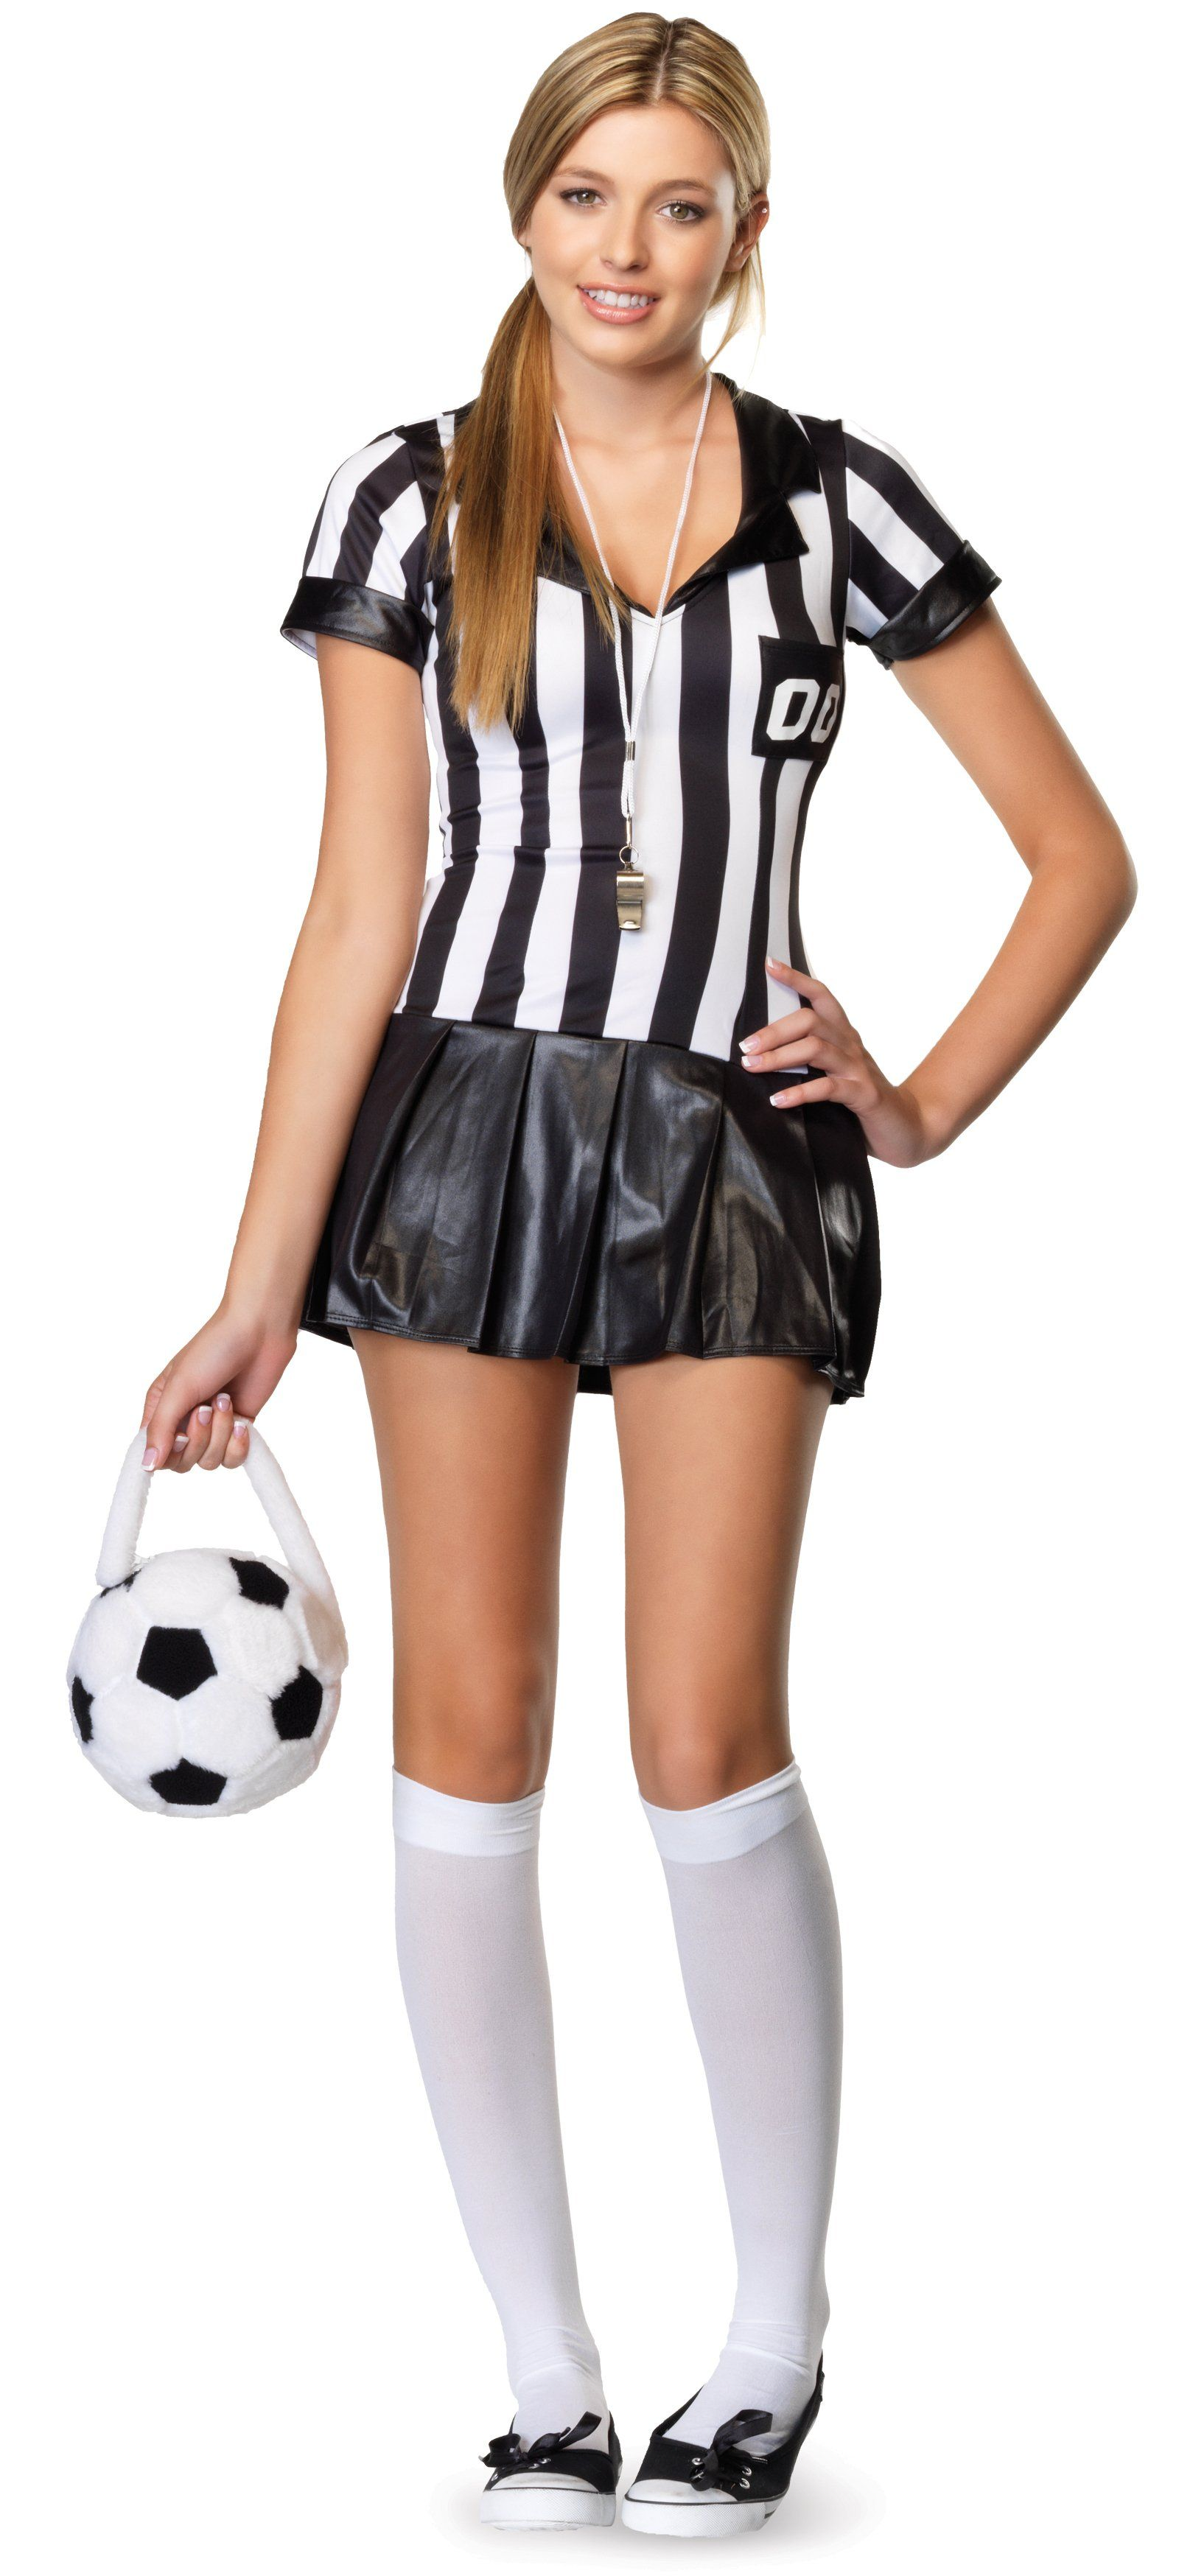 Time Out Referee Teen Costume from CostumeExpress.com   Bella ...